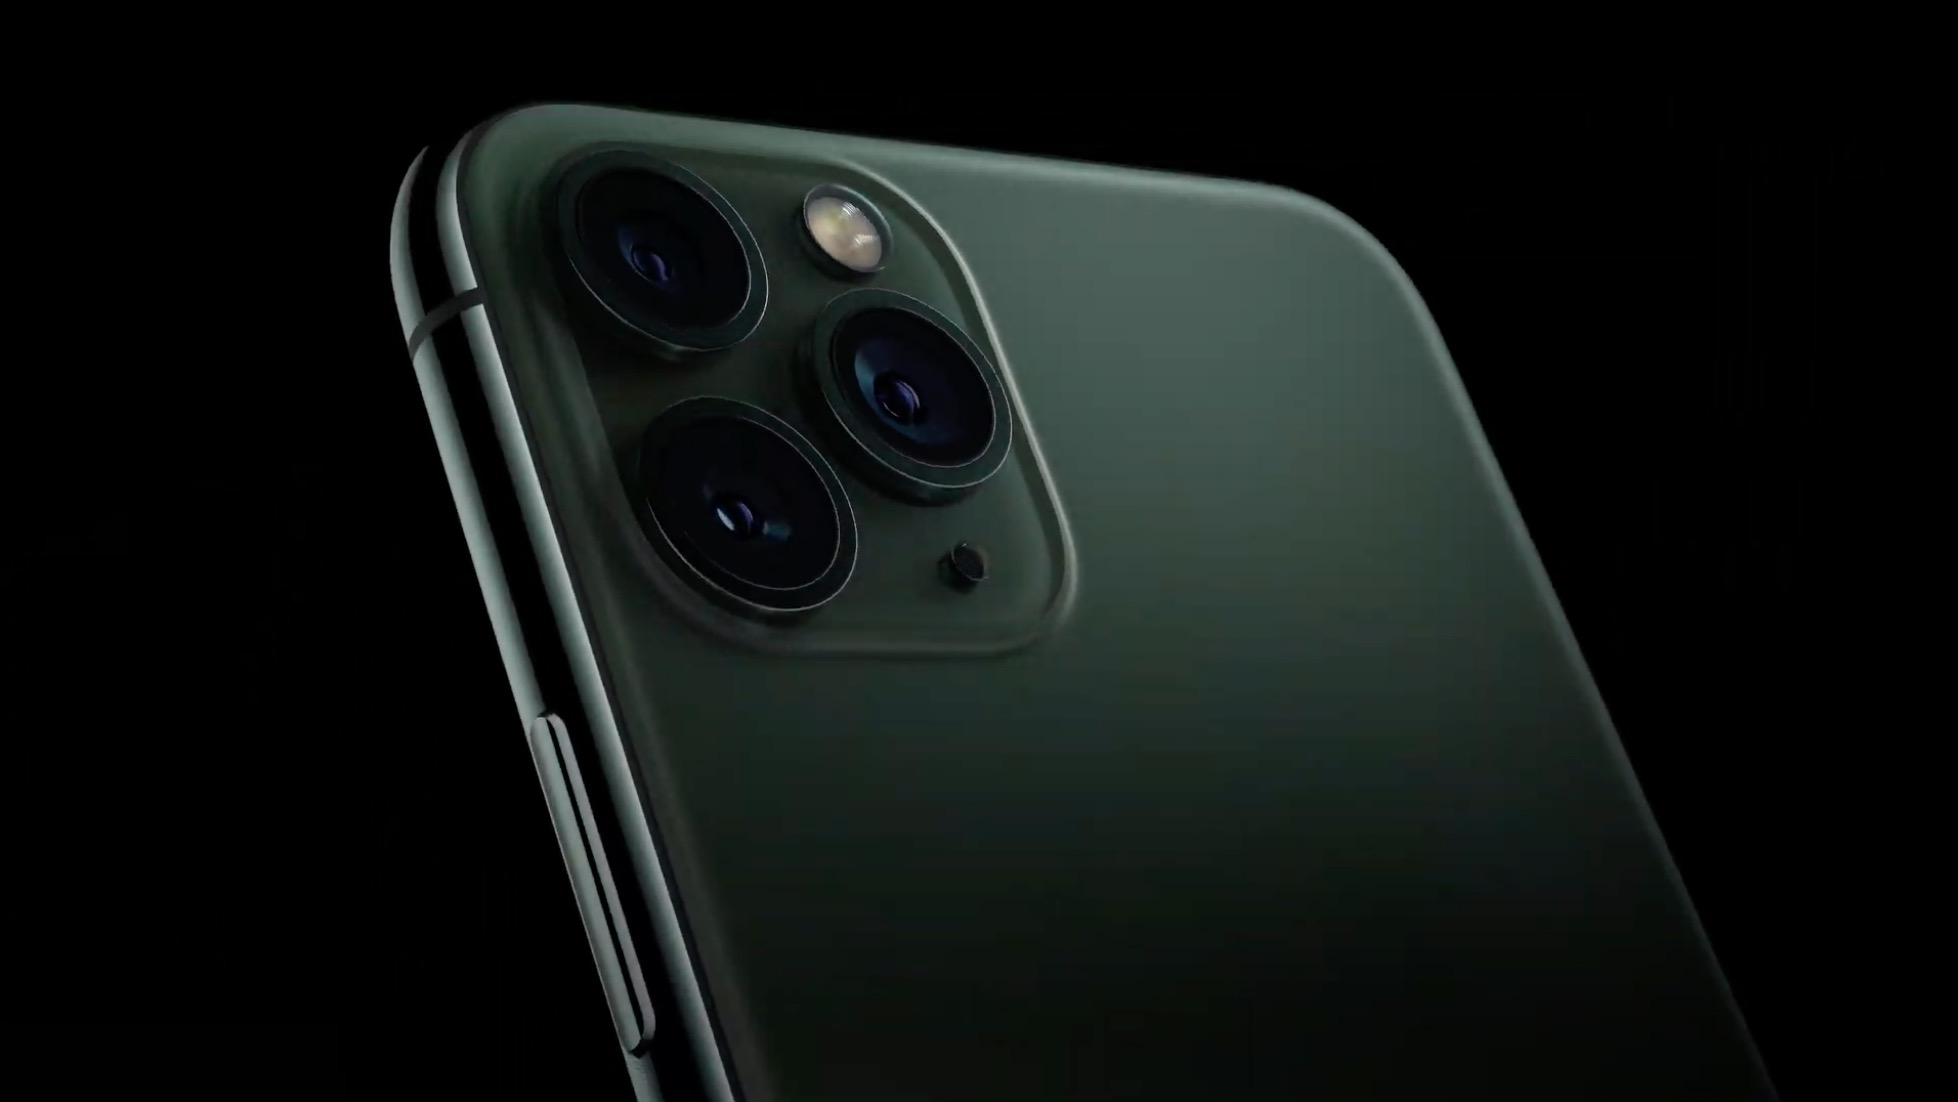 Apple Announces Iphone 11 Pro And Iphone 11 Pro Max With Three Cameras Venturebeat